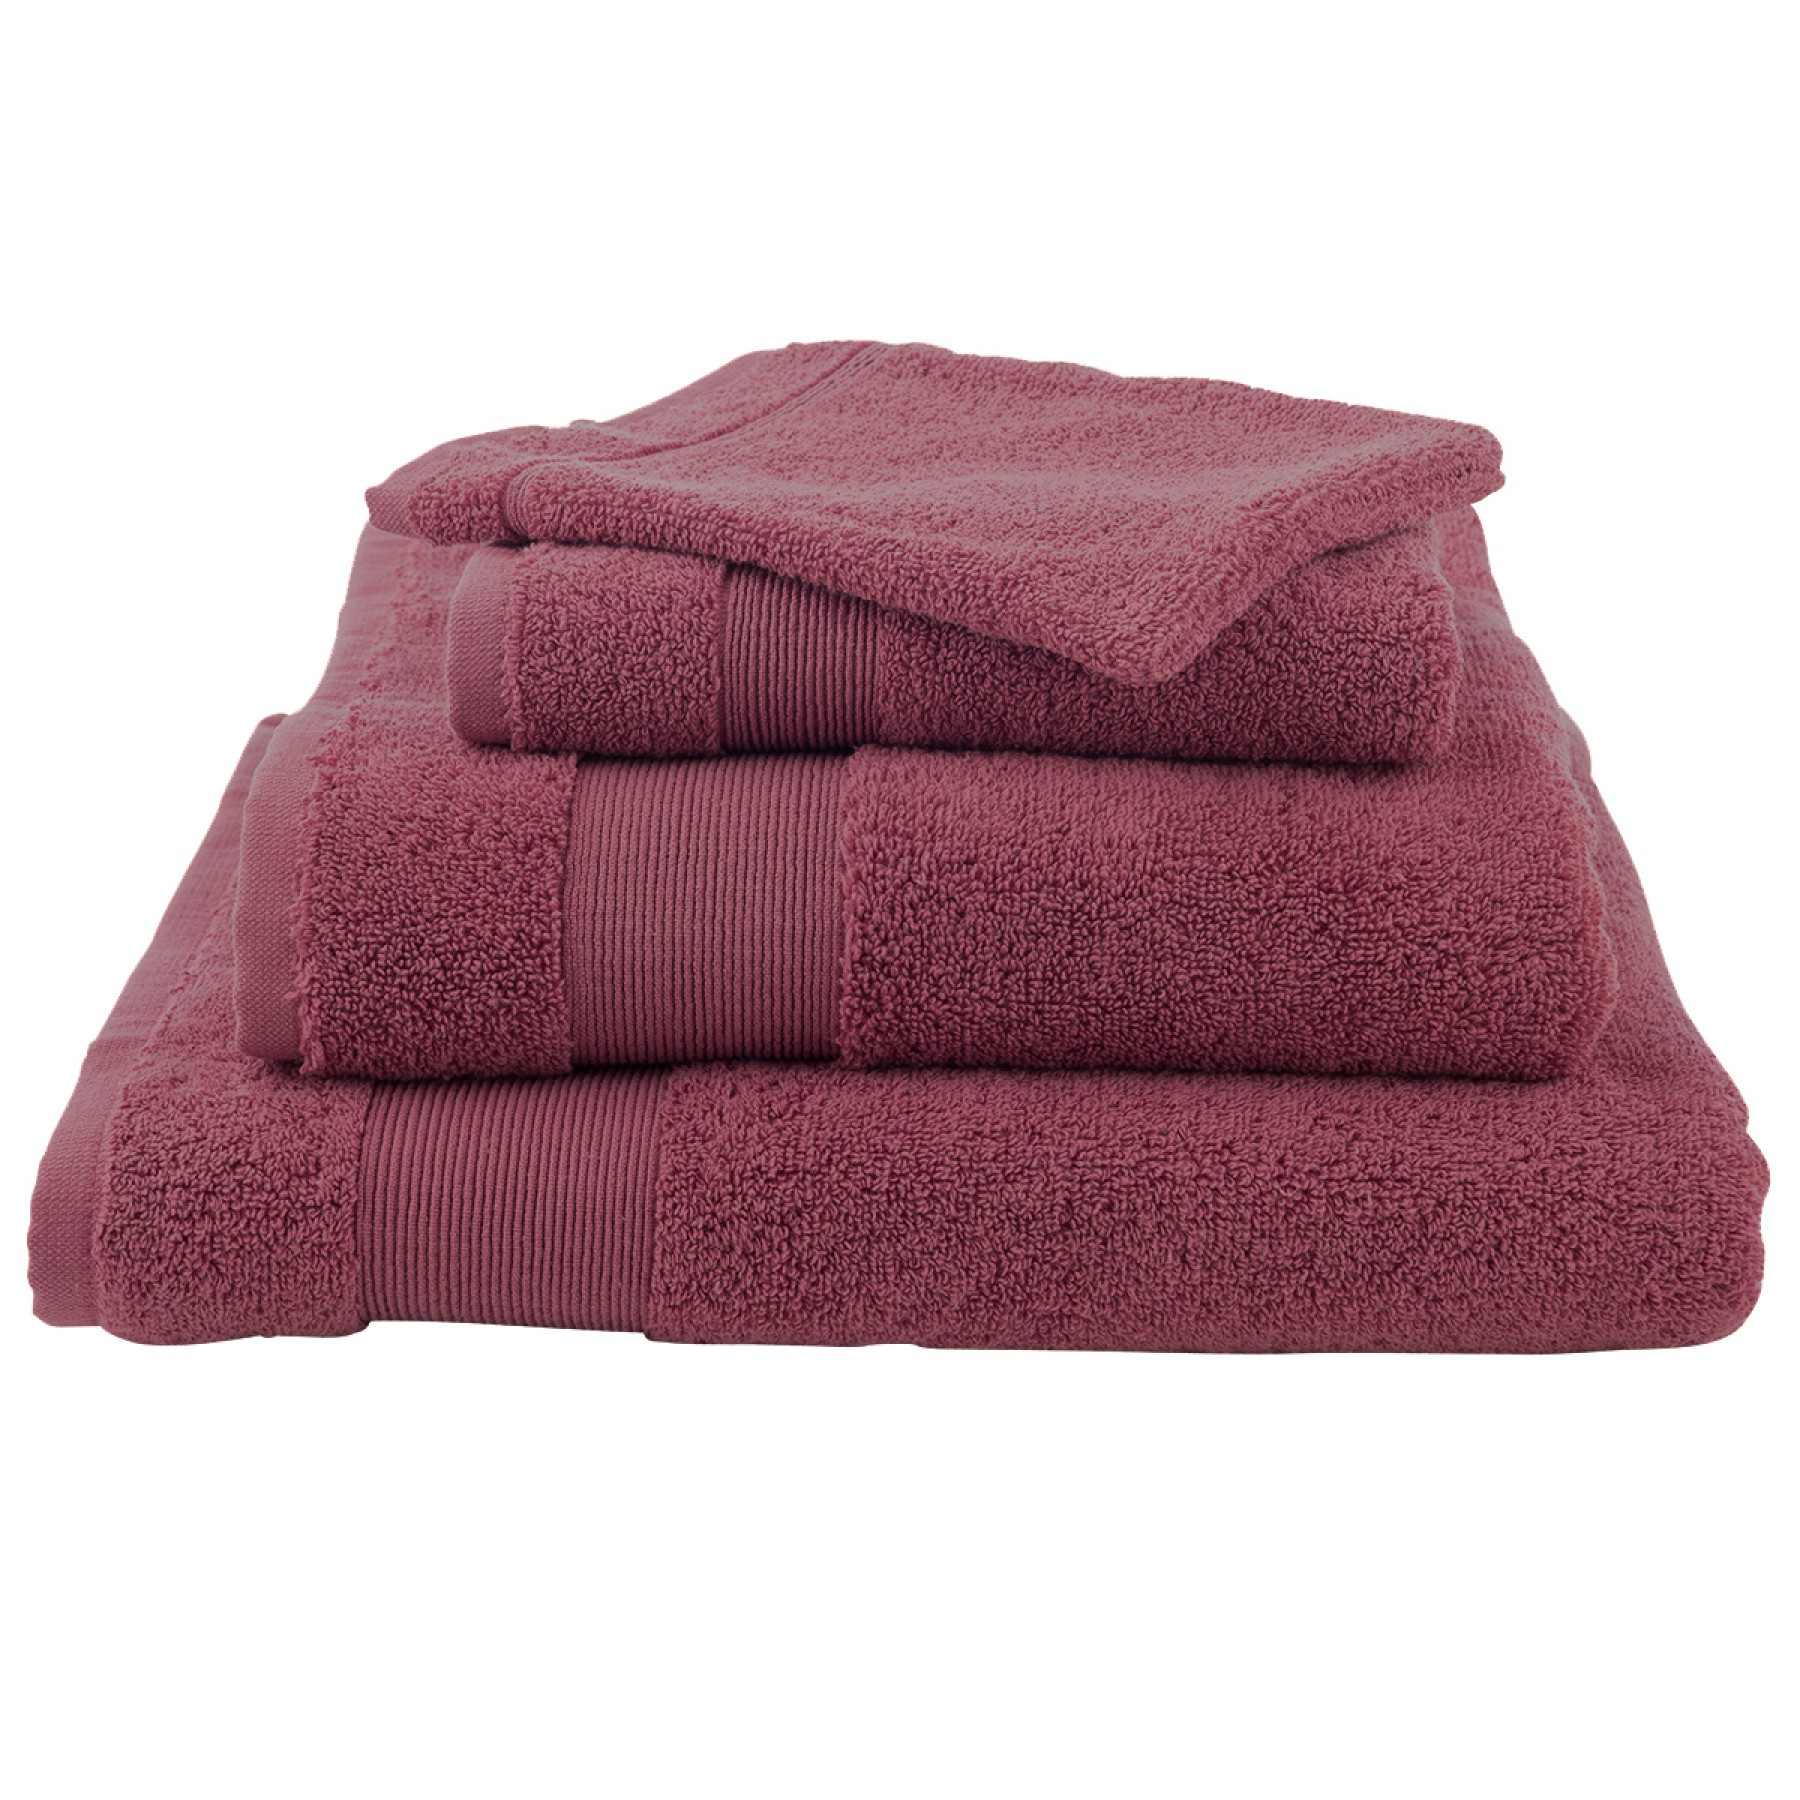 Livello Handdoek Home Collection Cherry